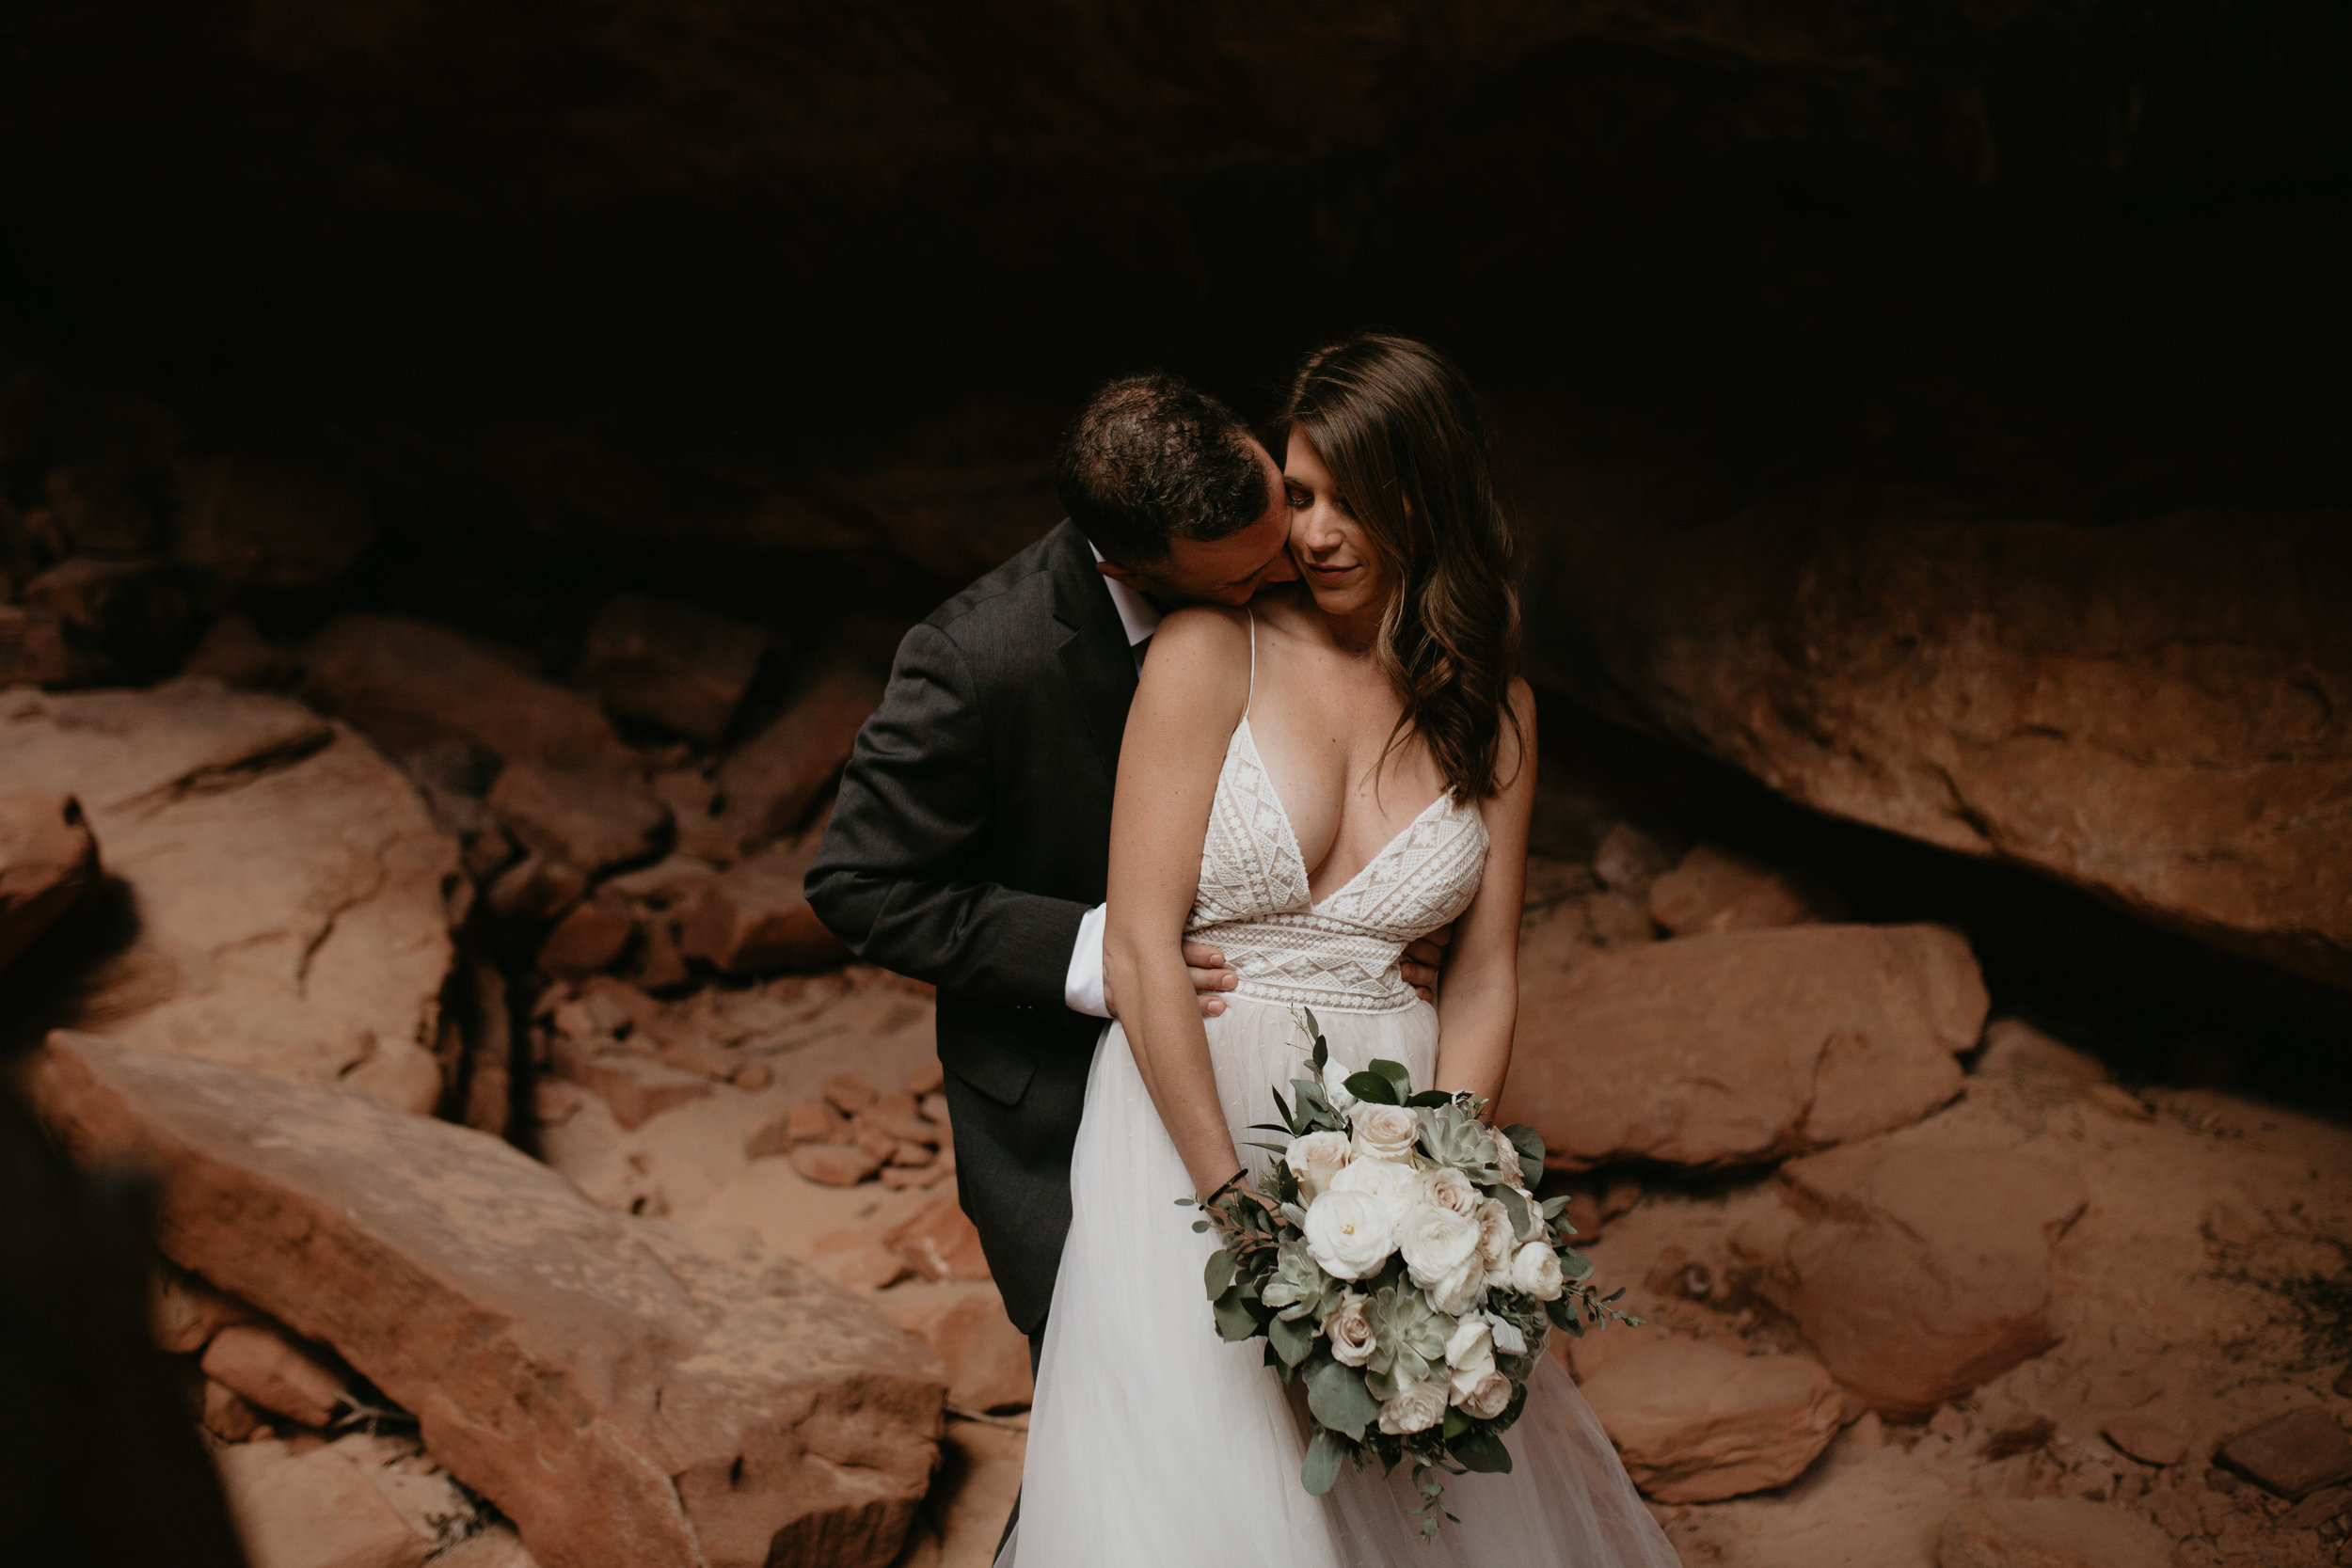 nicole-daacke-photography-zion-national-park-elopement-photographer-canyon-overlook-trail-elope-hiking-adventure-wedding-photos-fall-utah-red-rock-canyon-stgeorge-eloping-photographer-30.jpg